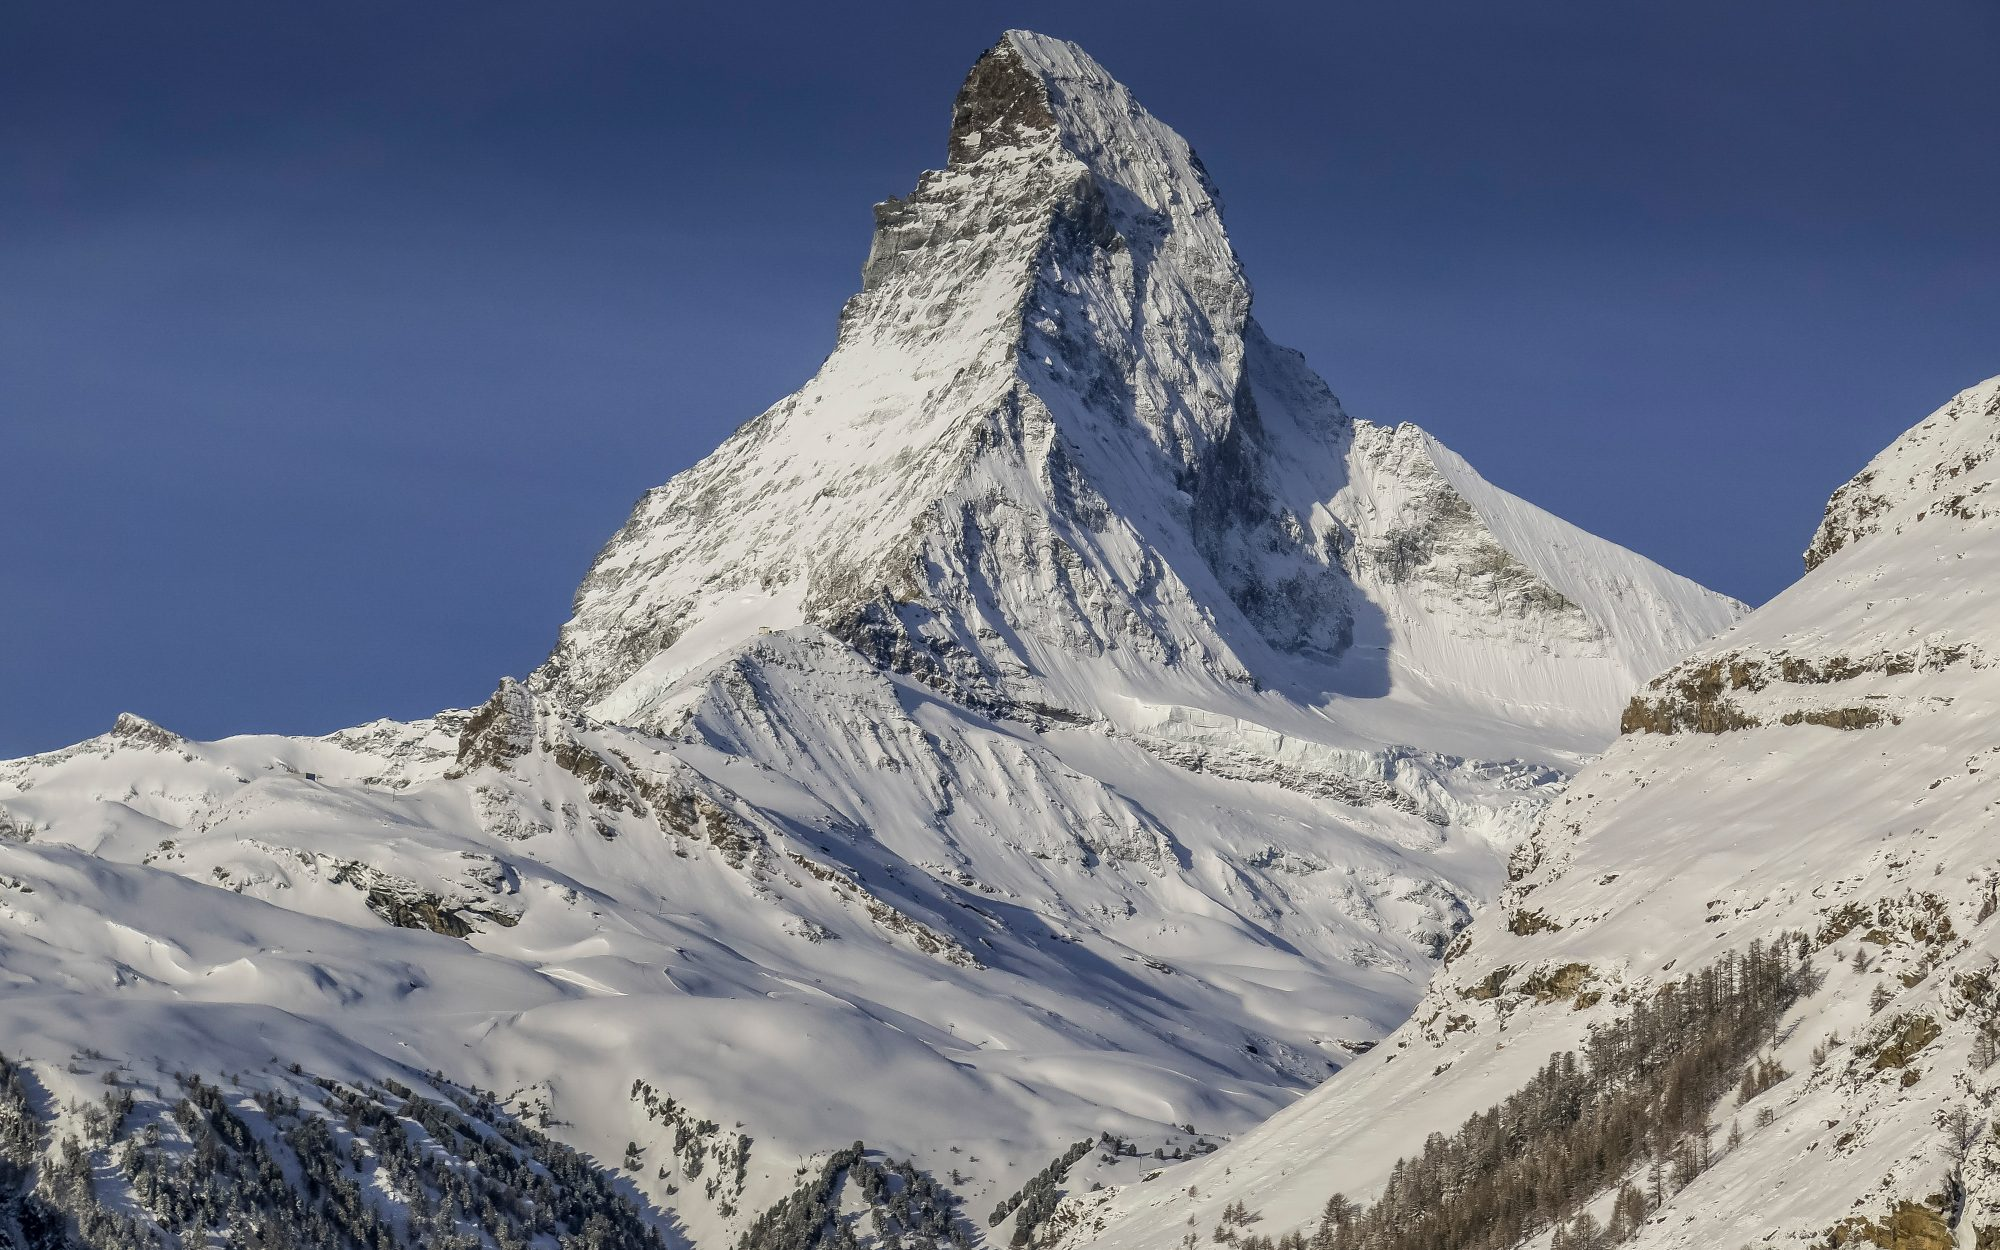 Switzerland's Matterhorn Lights up With Messages of Hope During Coronavirus Lockdown